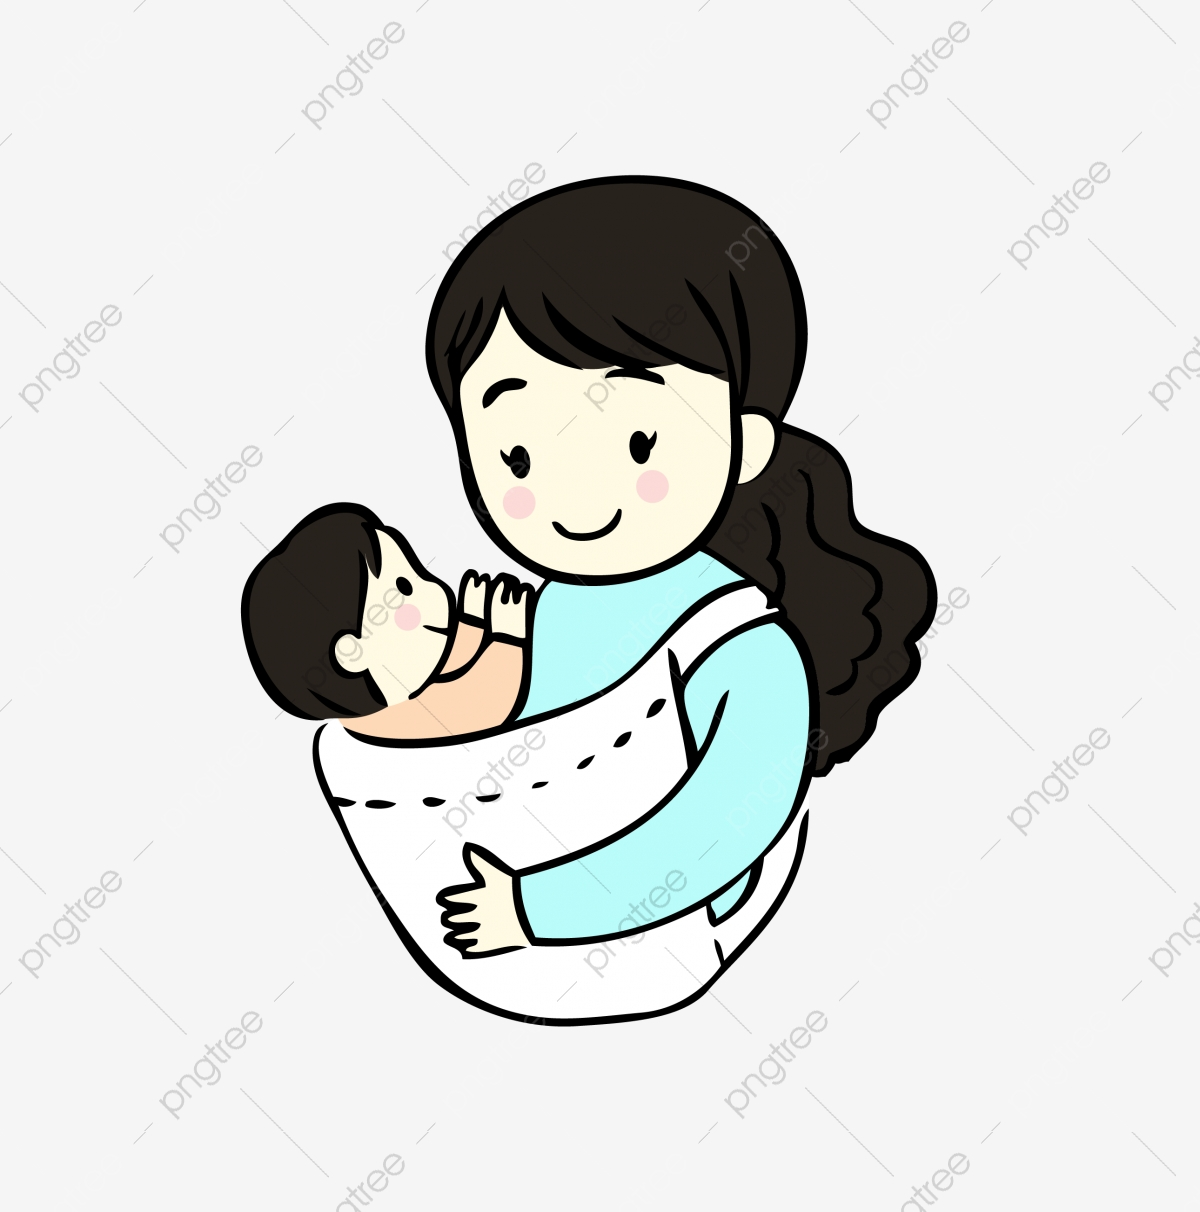 Cartoon Mother And Baby Cartoon Clipart Baby Clipart Baby Png And Vector With Transparent Background For Free Download